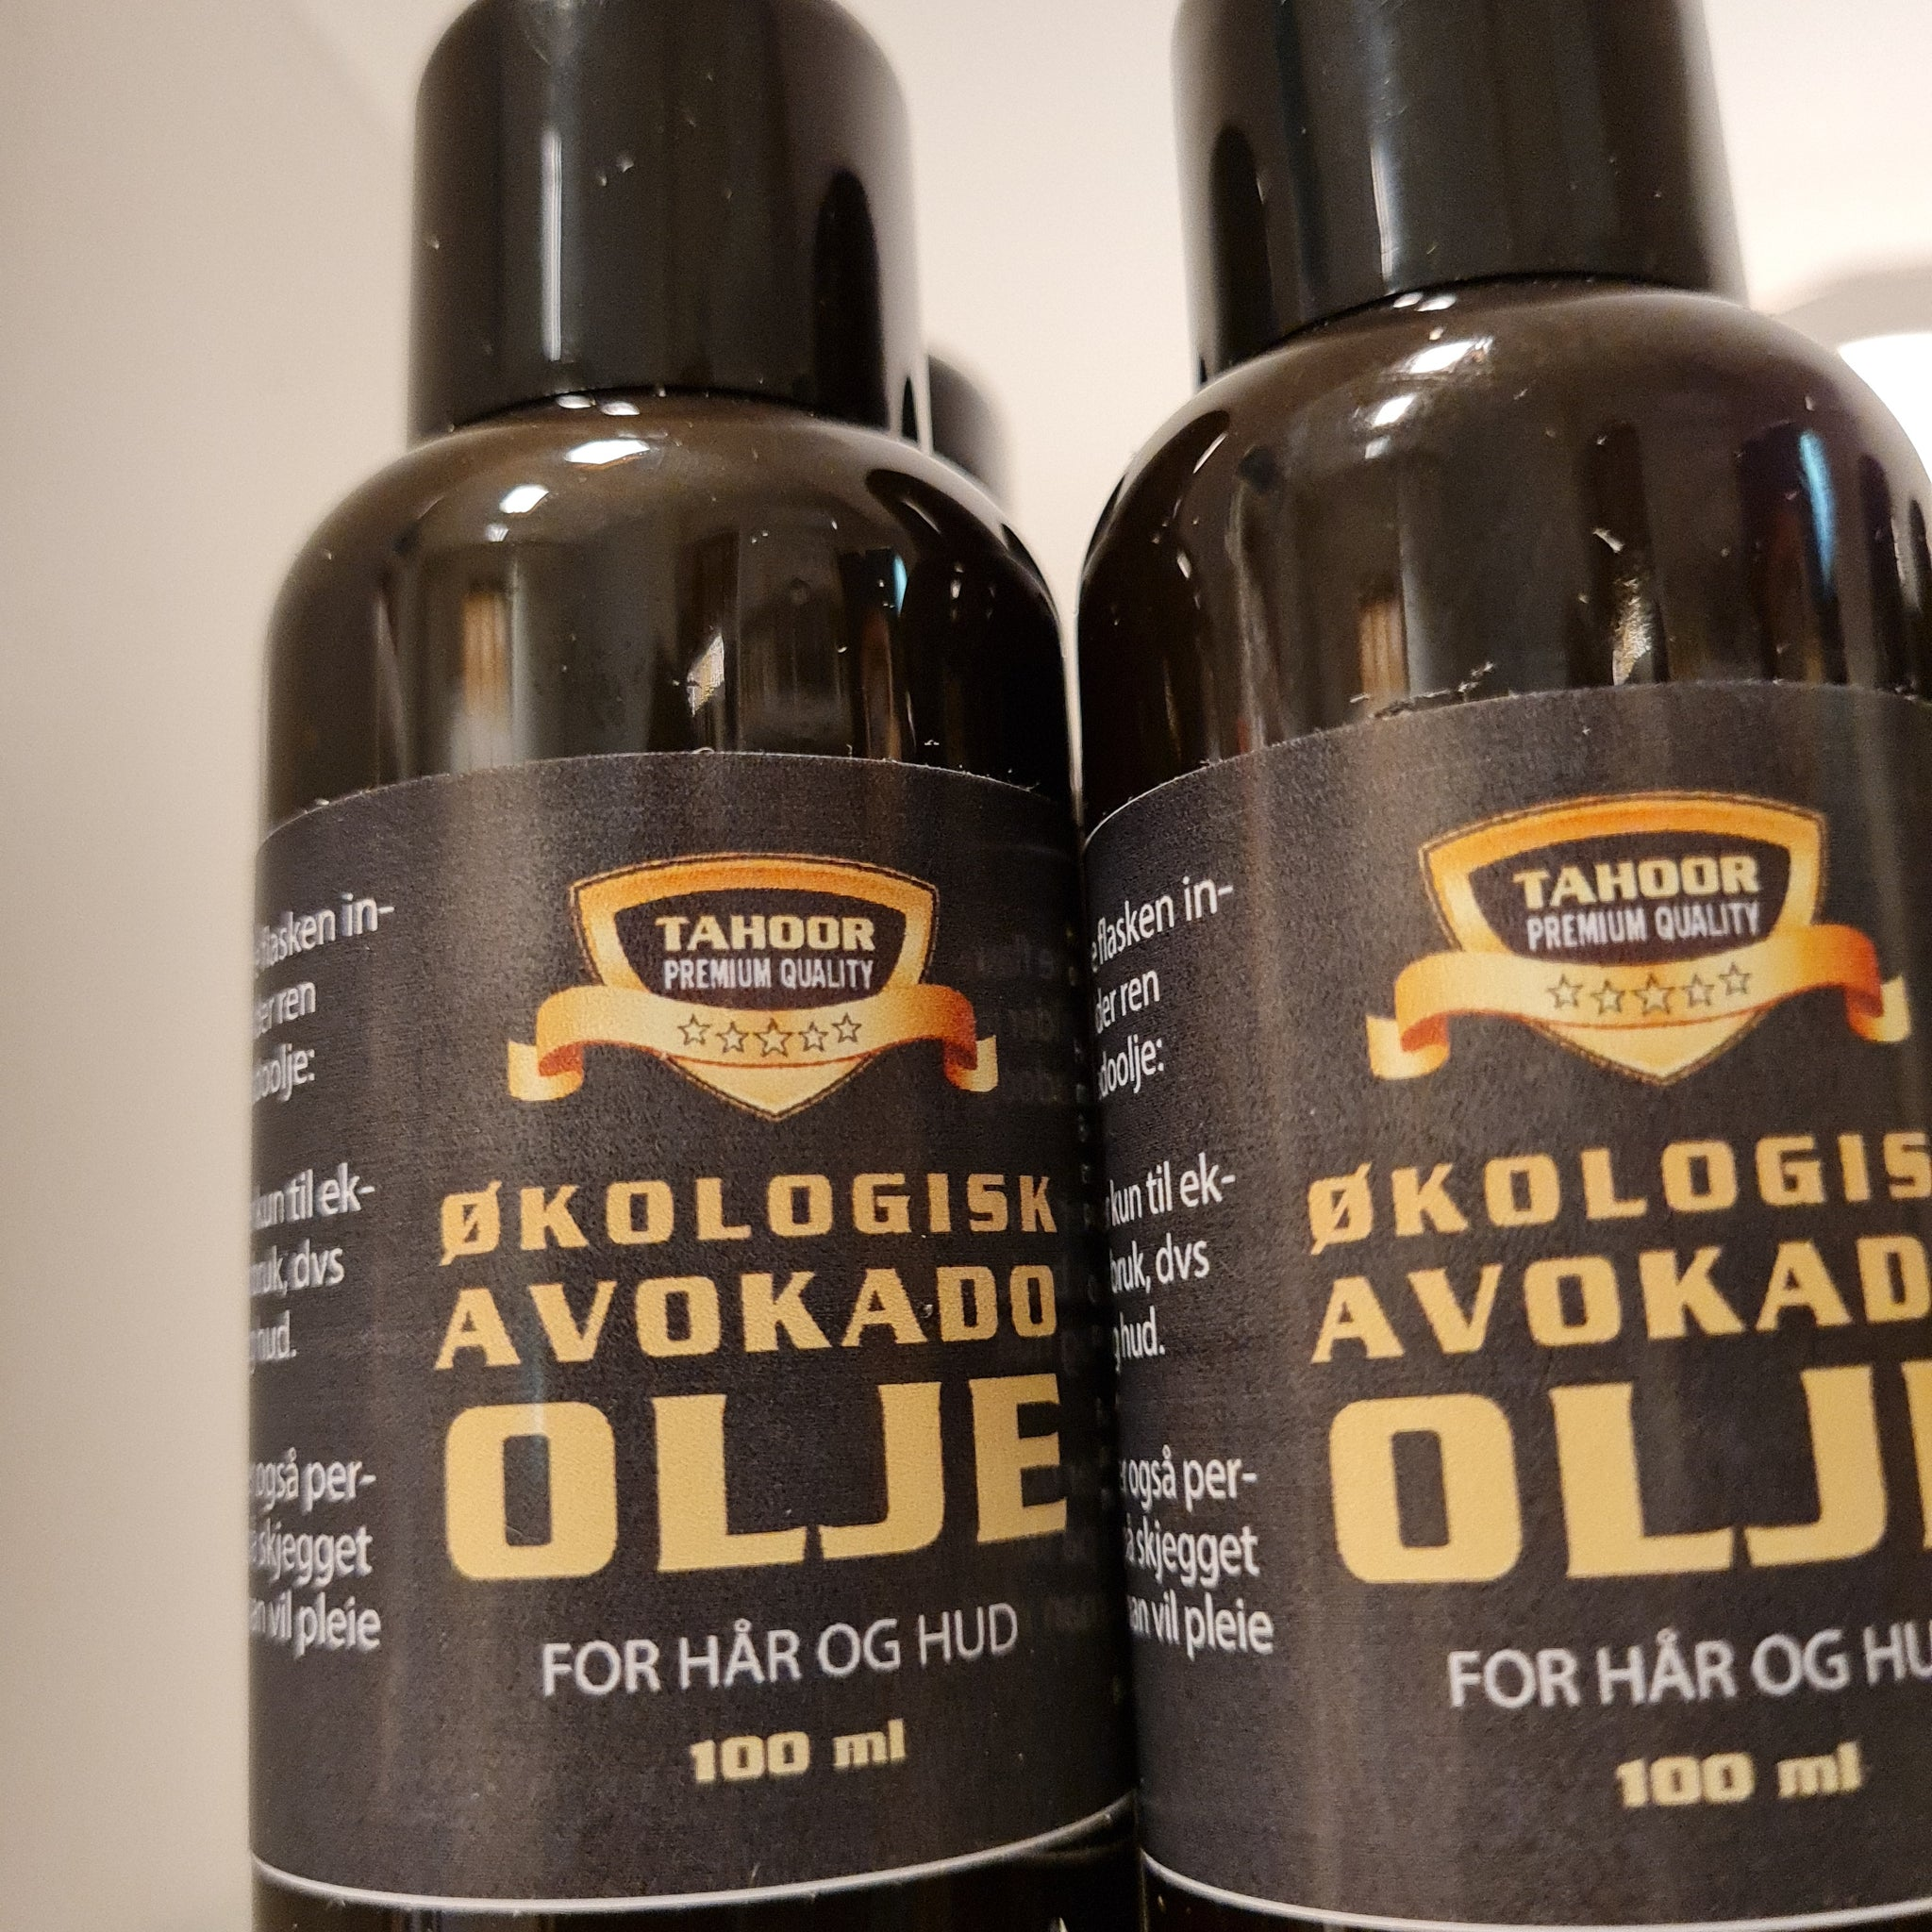 Økologisk avokadoolje for hår og hud (100ml)